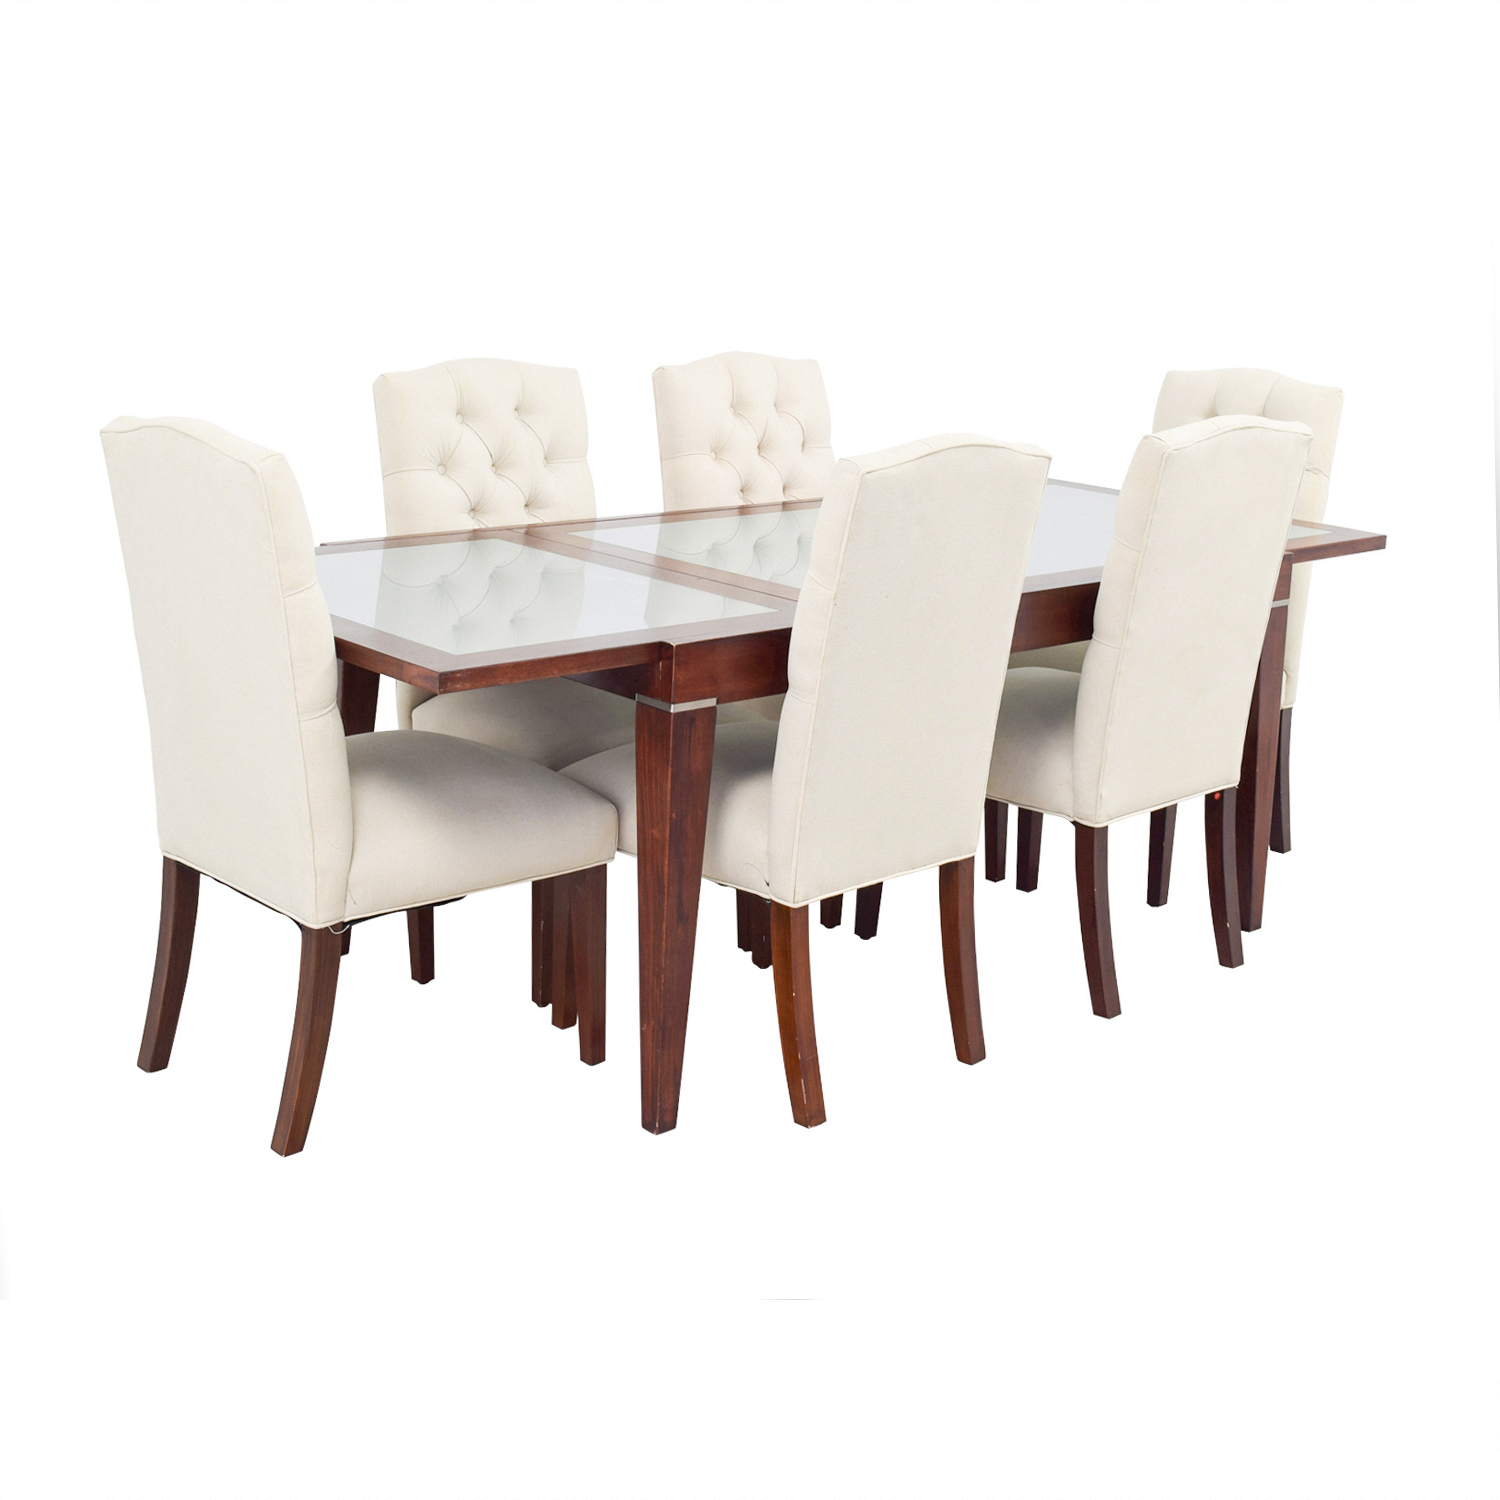 West Elm West Elm Extendable Glass & Wood Dining Set with Upholstered Tufted Chairs Beige, Brown